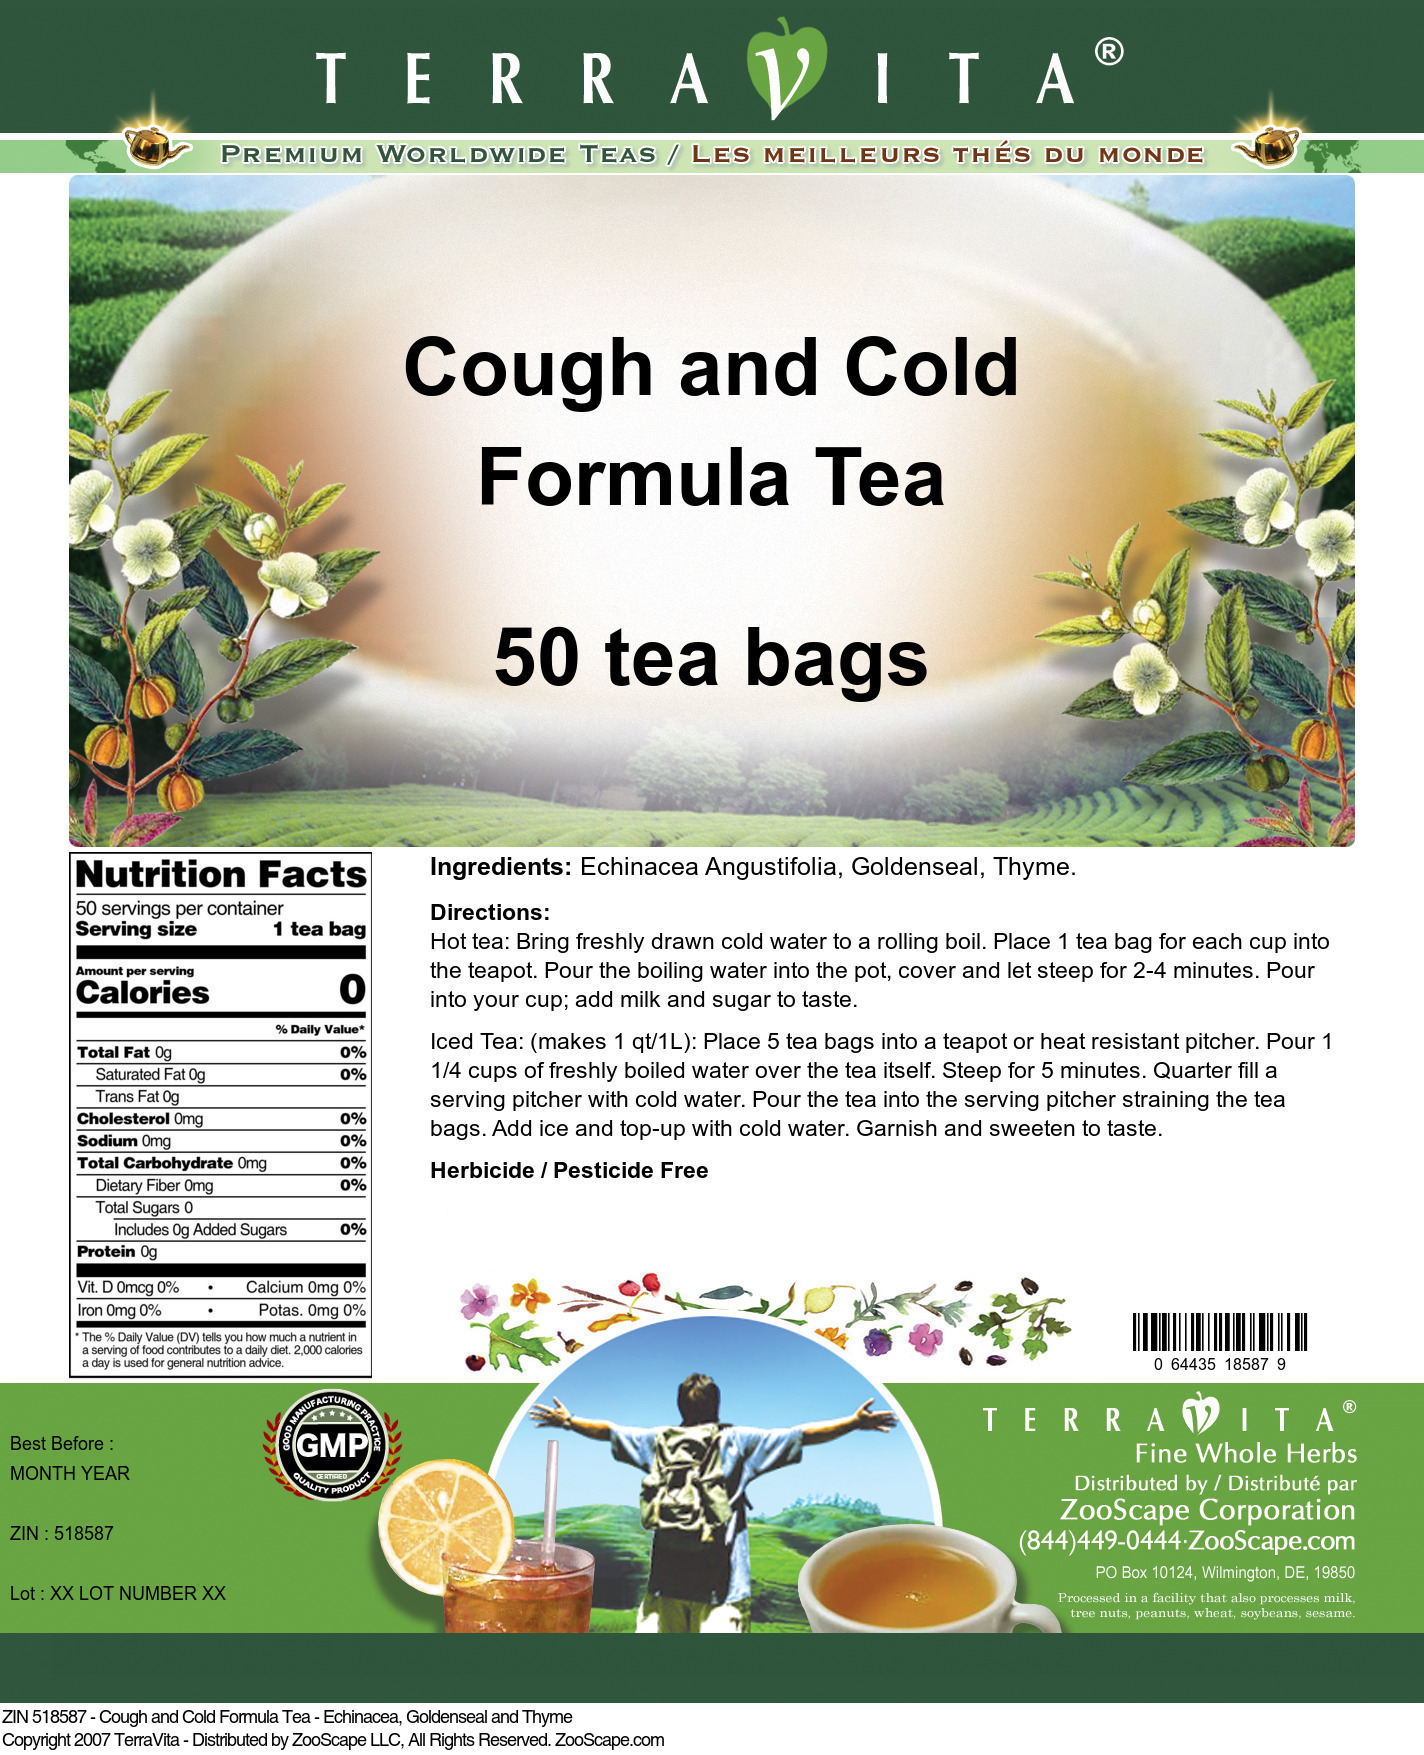 Cough and Cold Formula Tea - Echinacea, Goldenseal and Thyme